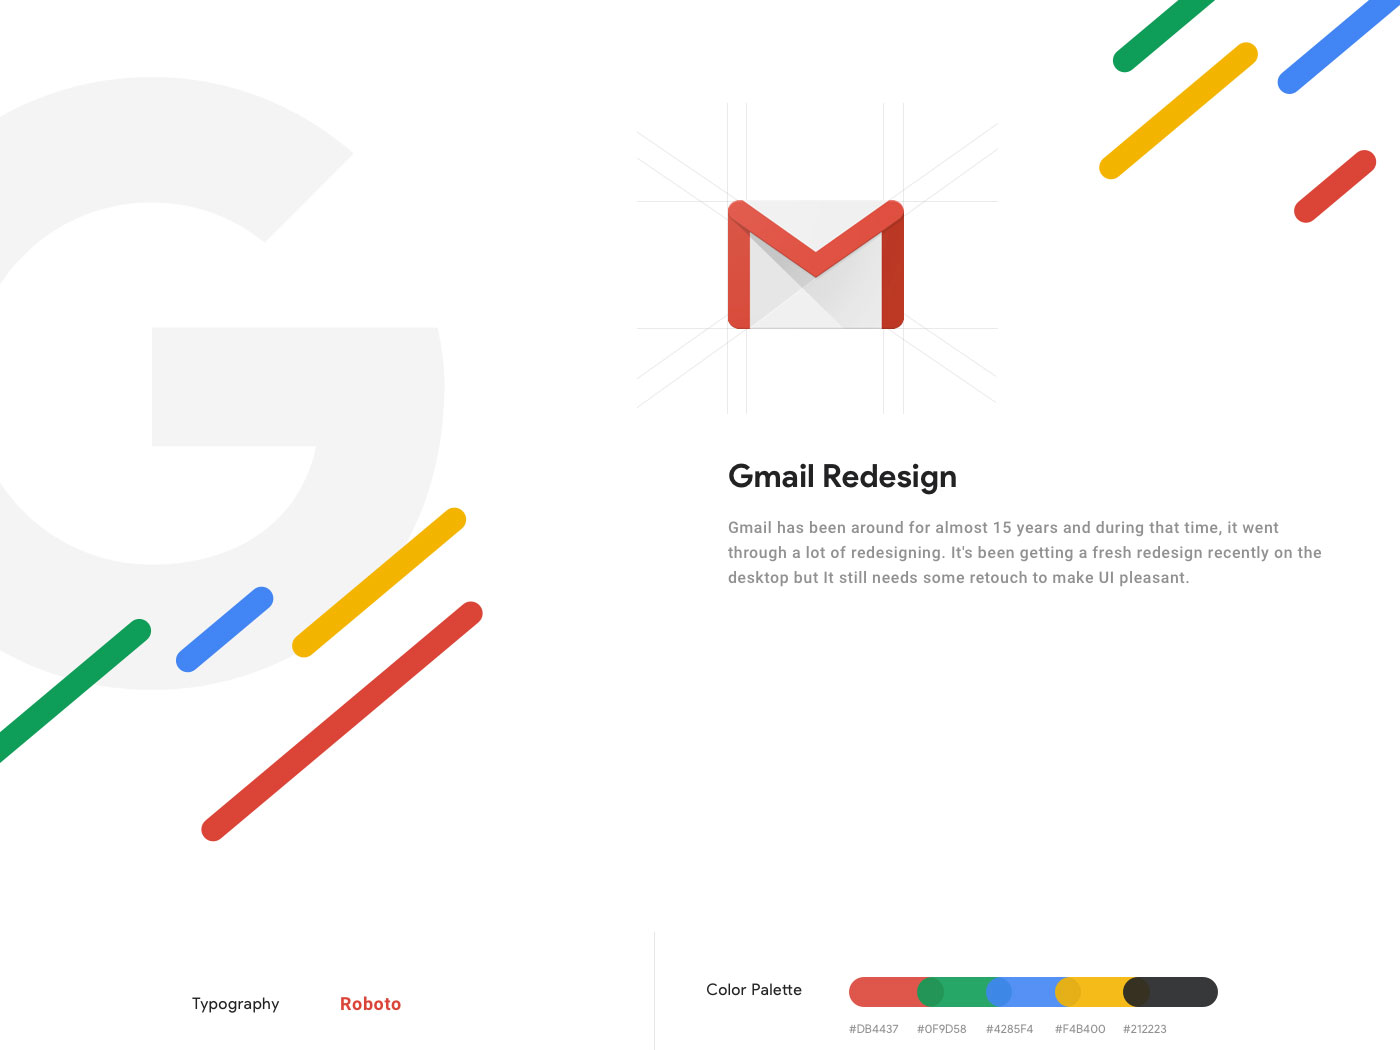 Gmail Redesign - Freebie cover image